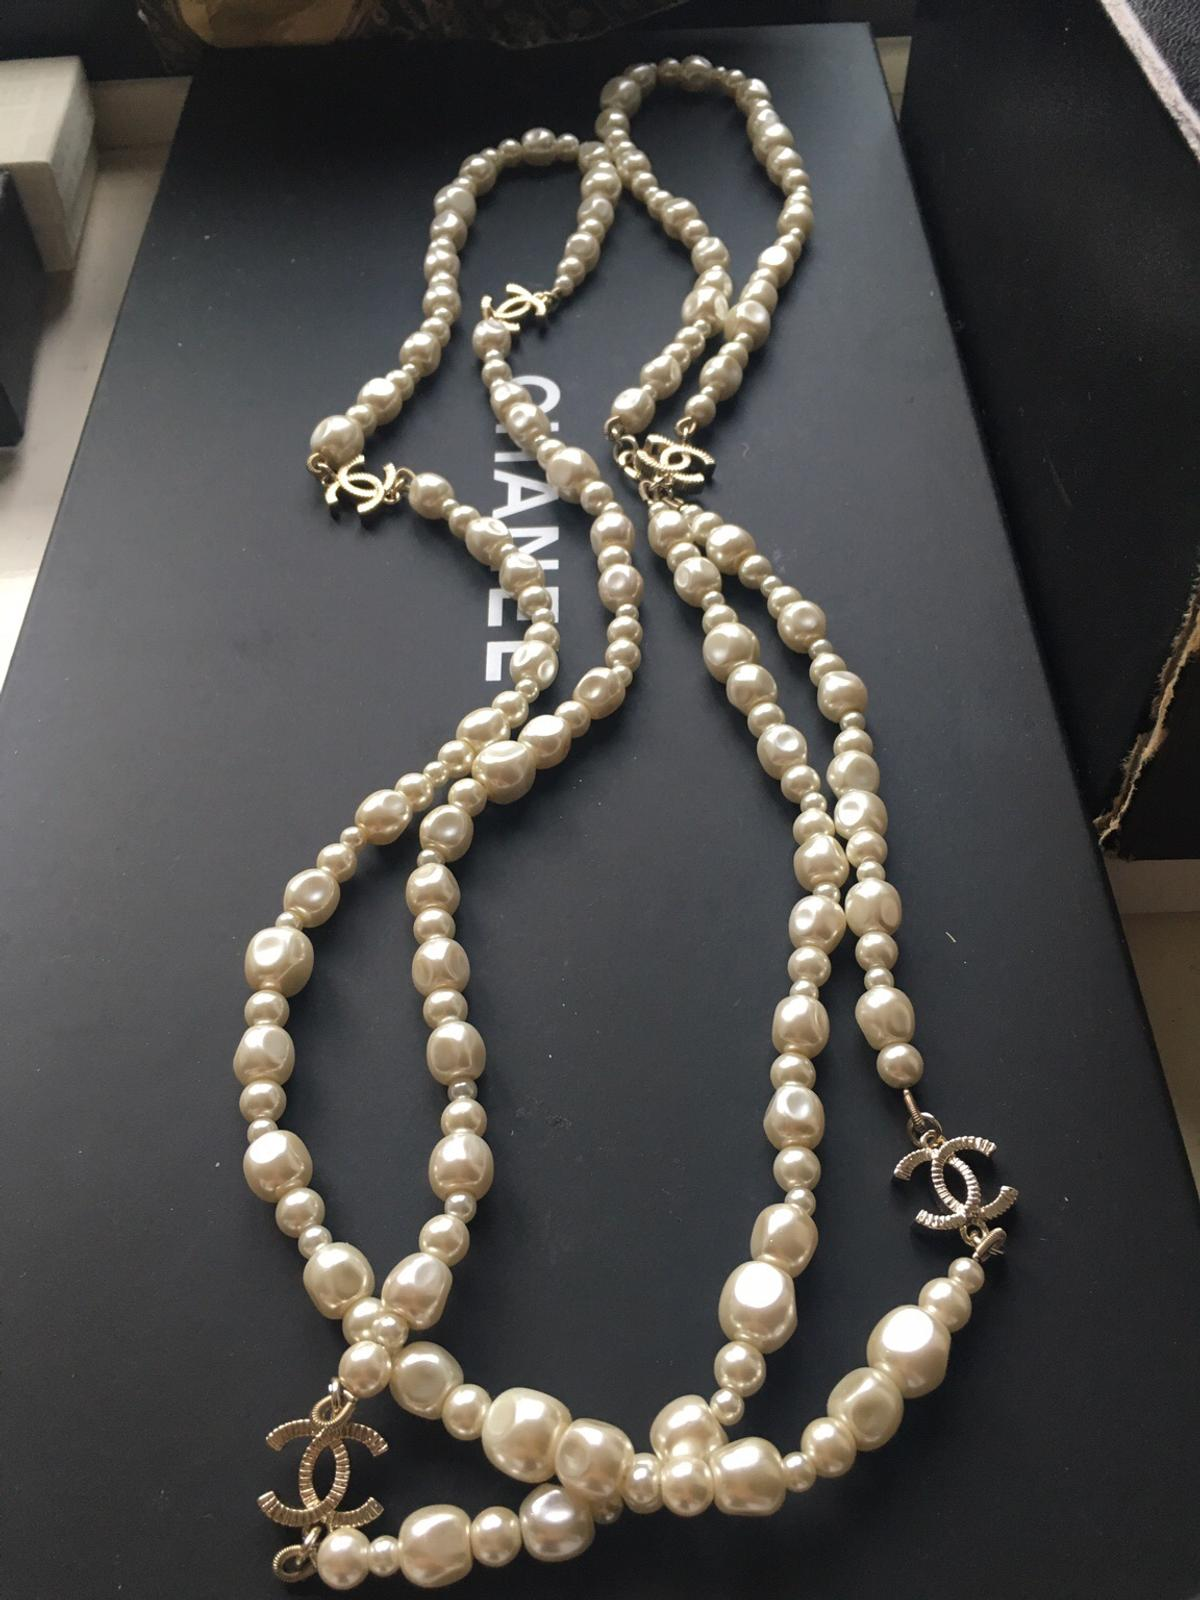 c0537474ef60c Chanel pearl and gold necklace 2015